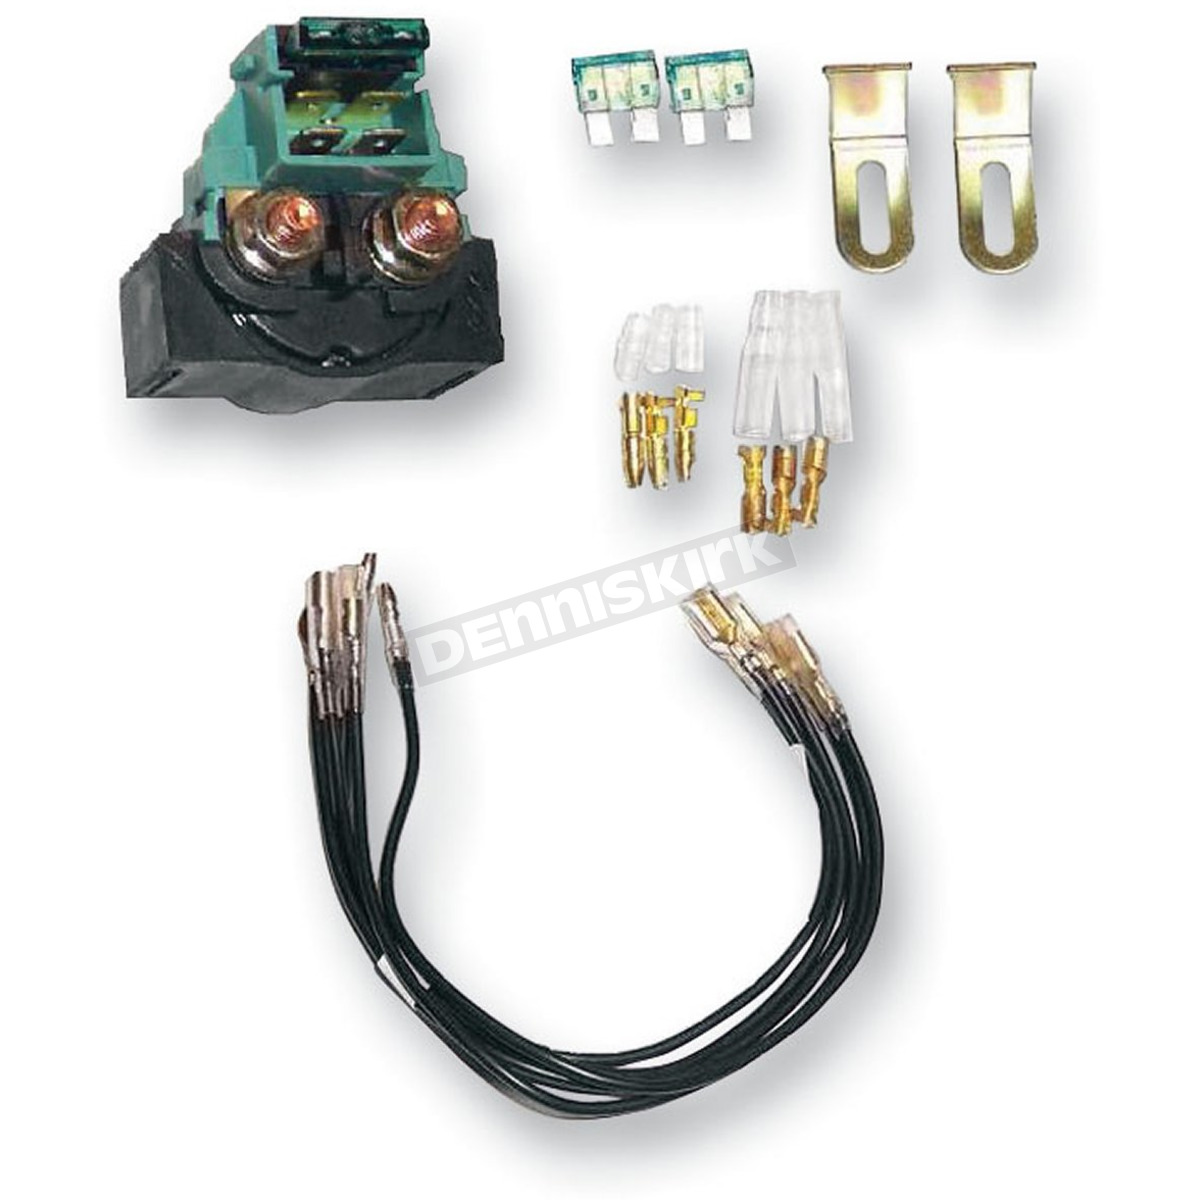 K & S Universal Starter Relay - 23-1000 Dirt Bike Motorcycle ... Universal Atv Solenoid Wiring Diagram on atv horn wiring diagram, atv starter diagram, atv contactor wiring diagram, atv wiring harness diagram,